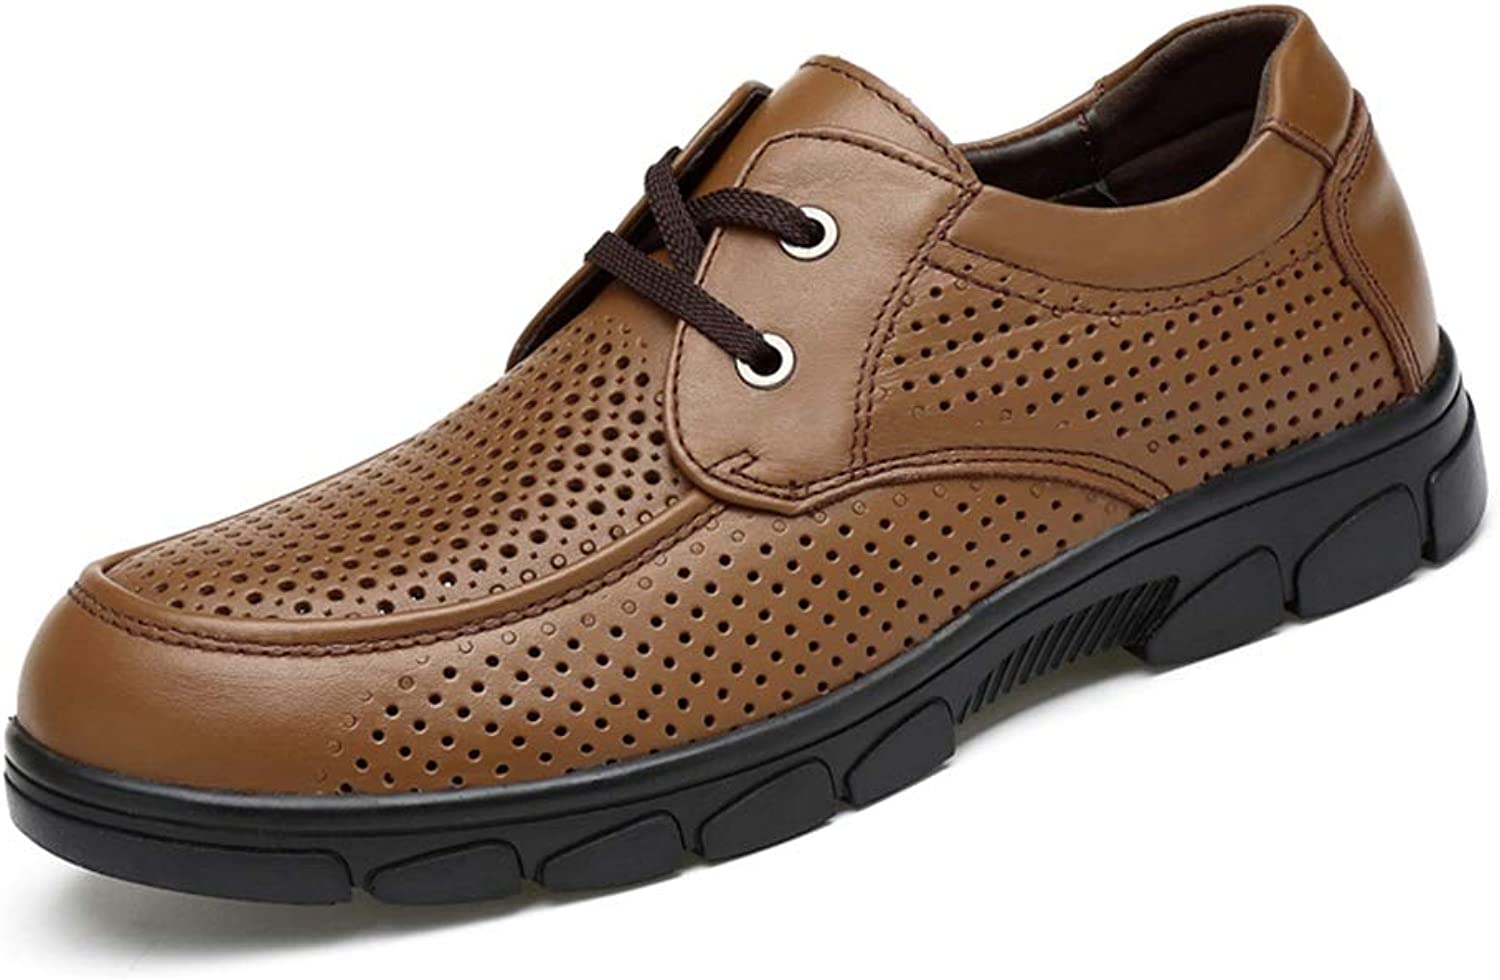 Oxford shoes Mens Formal shoes Lace Up OX Leather Hollow Breathable Contracted (color   Brown, Size   5 UK)